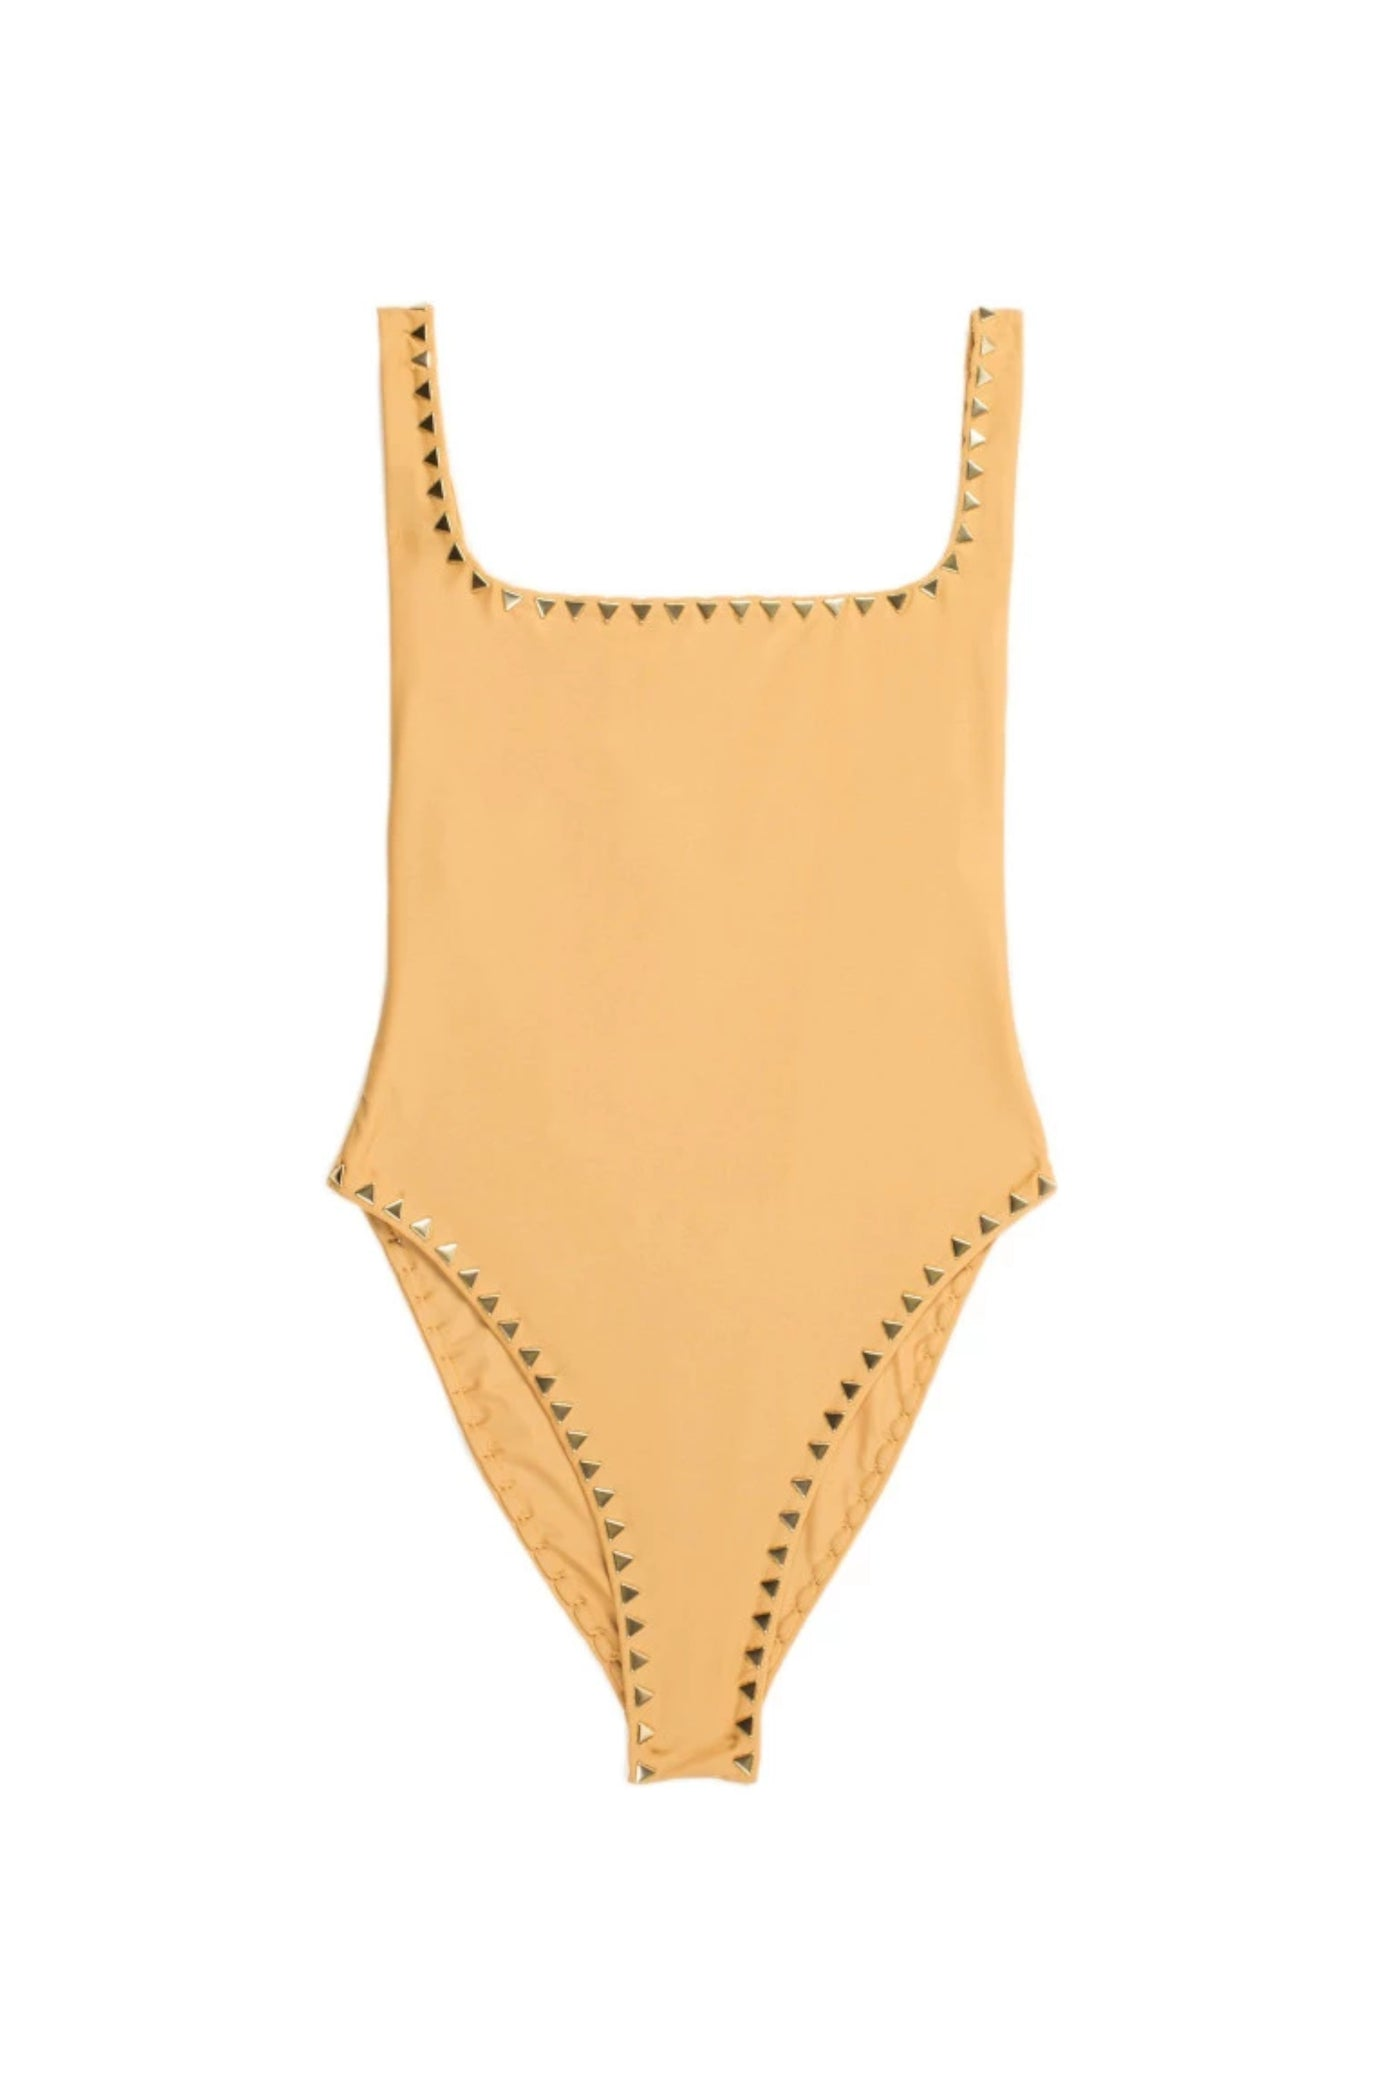 The Goddess One Piece (Tan)